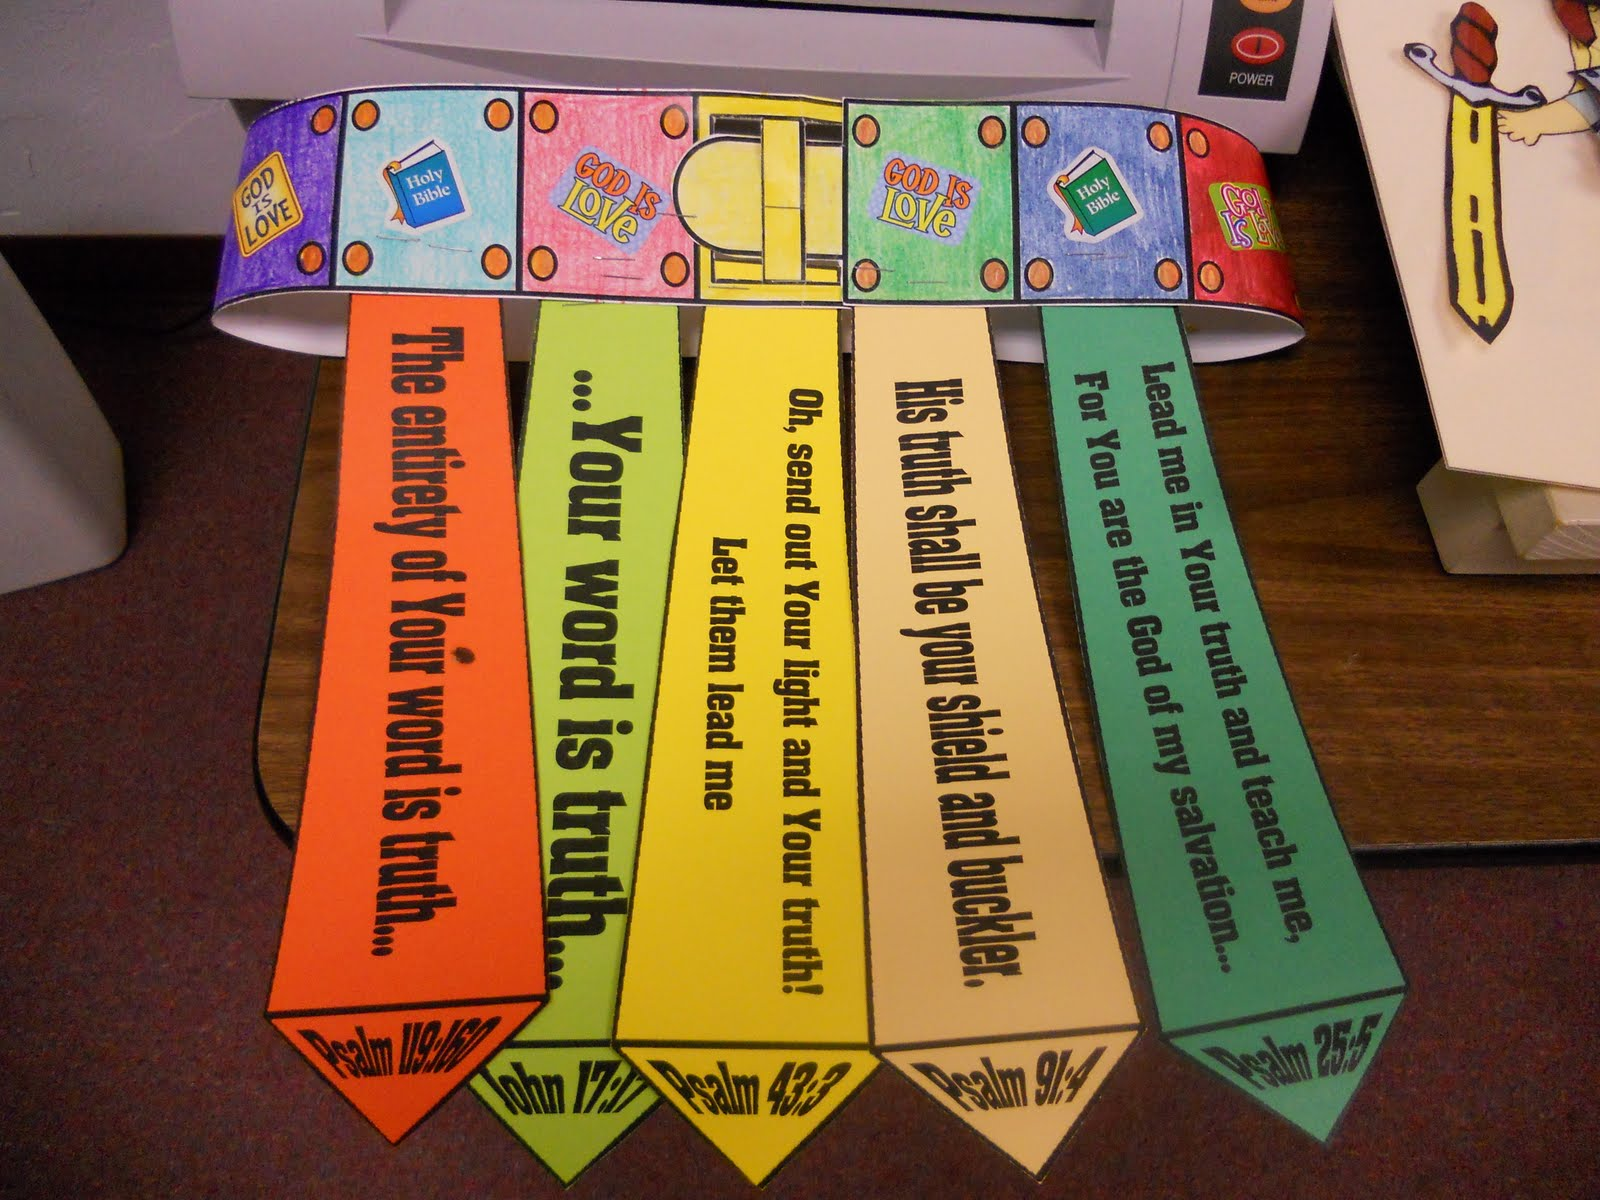 Belt of truth craft for preschoolers